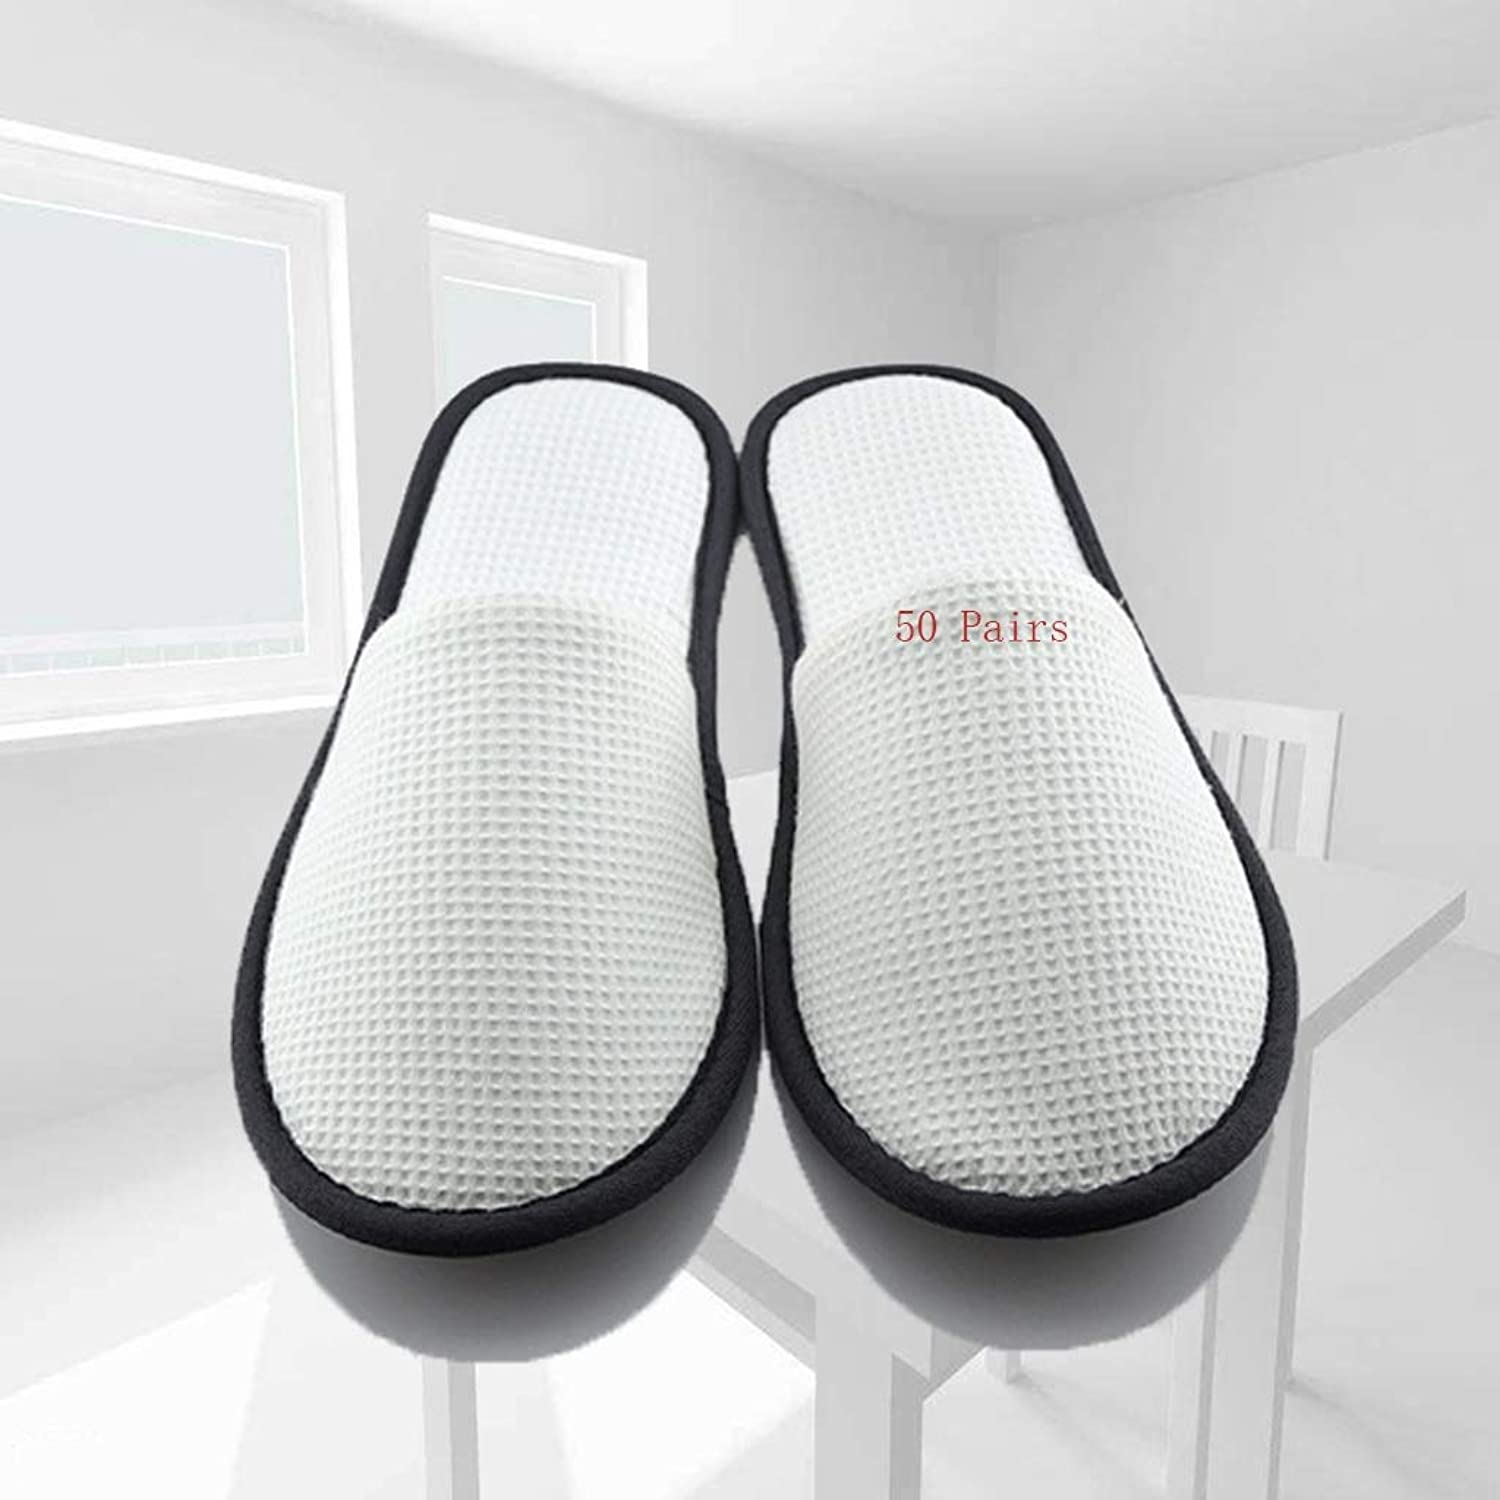 Disposable slippers,spa slippers unisex Disposable Slippers Men's Slippers Sauna Slippers 50 Pairs Of Boys Thickening Anti-static color Non-slip Slippers EVA Women's Slippers Hotel Home Hospitality gu